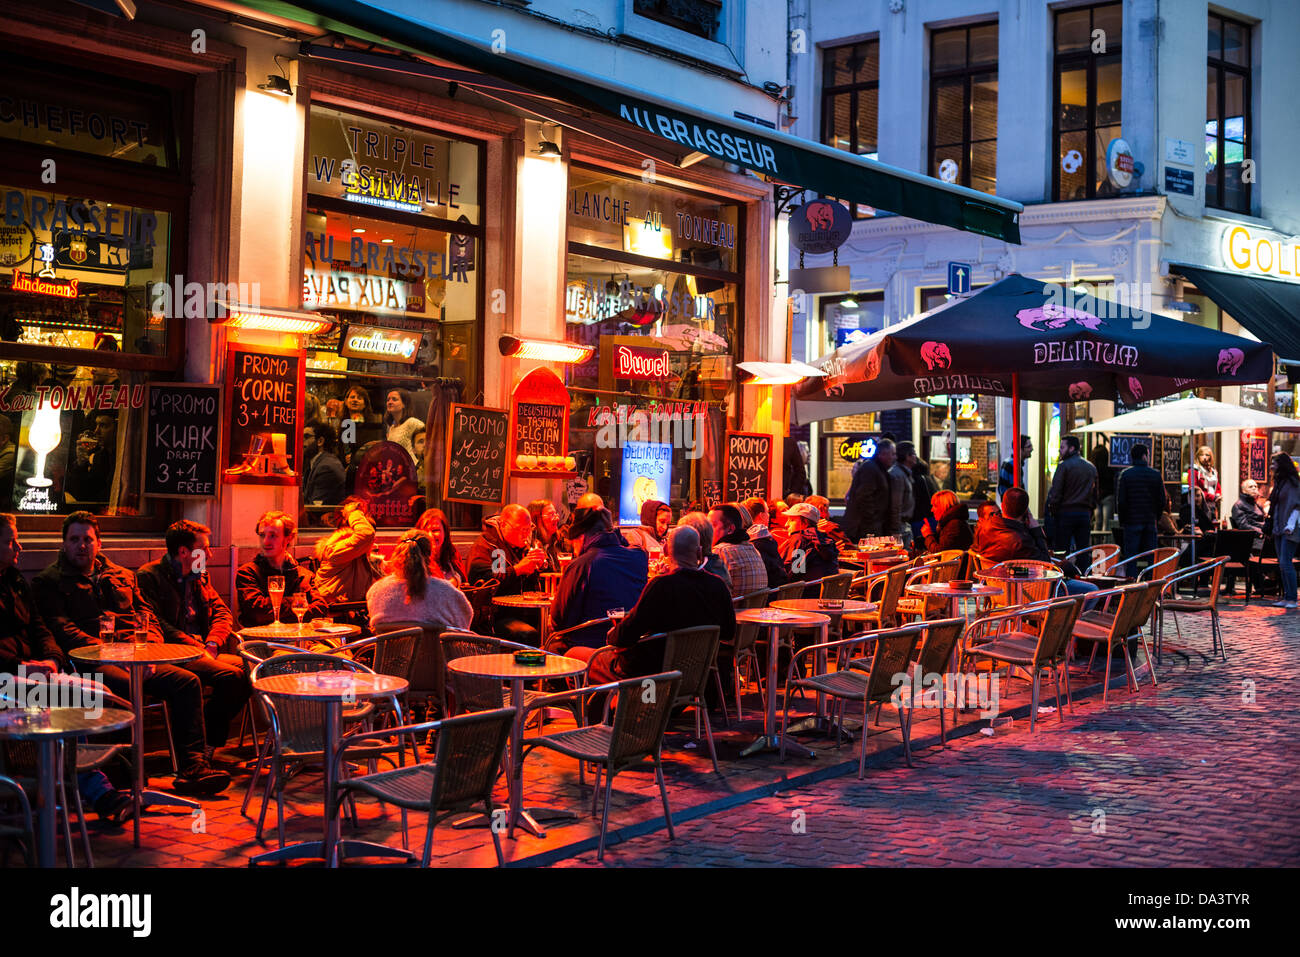 bars with outdoor seating BRUSSELS, Belgium   Patrons eat and drink at outdoor seating  bars with outdoor seating